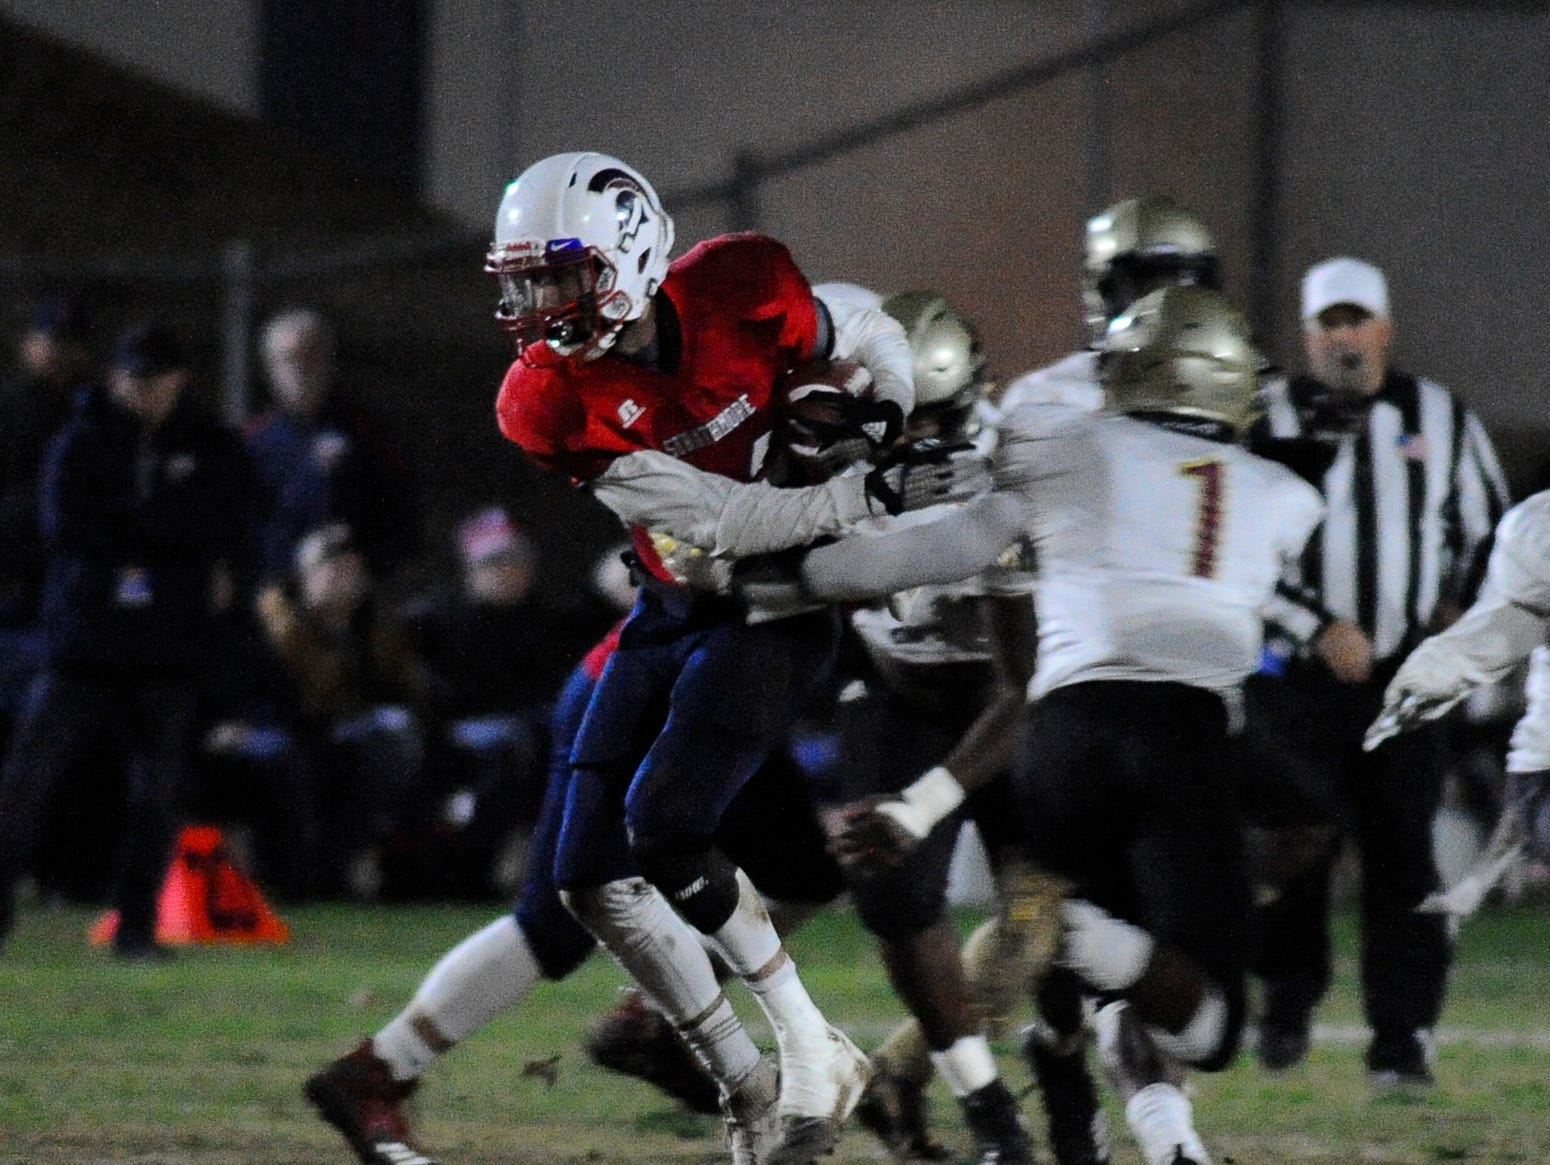 Strathmore High School hosts Adelanto during a CIF SoCal Regional Championship Bowl Game on Friday, November 30, 2018.